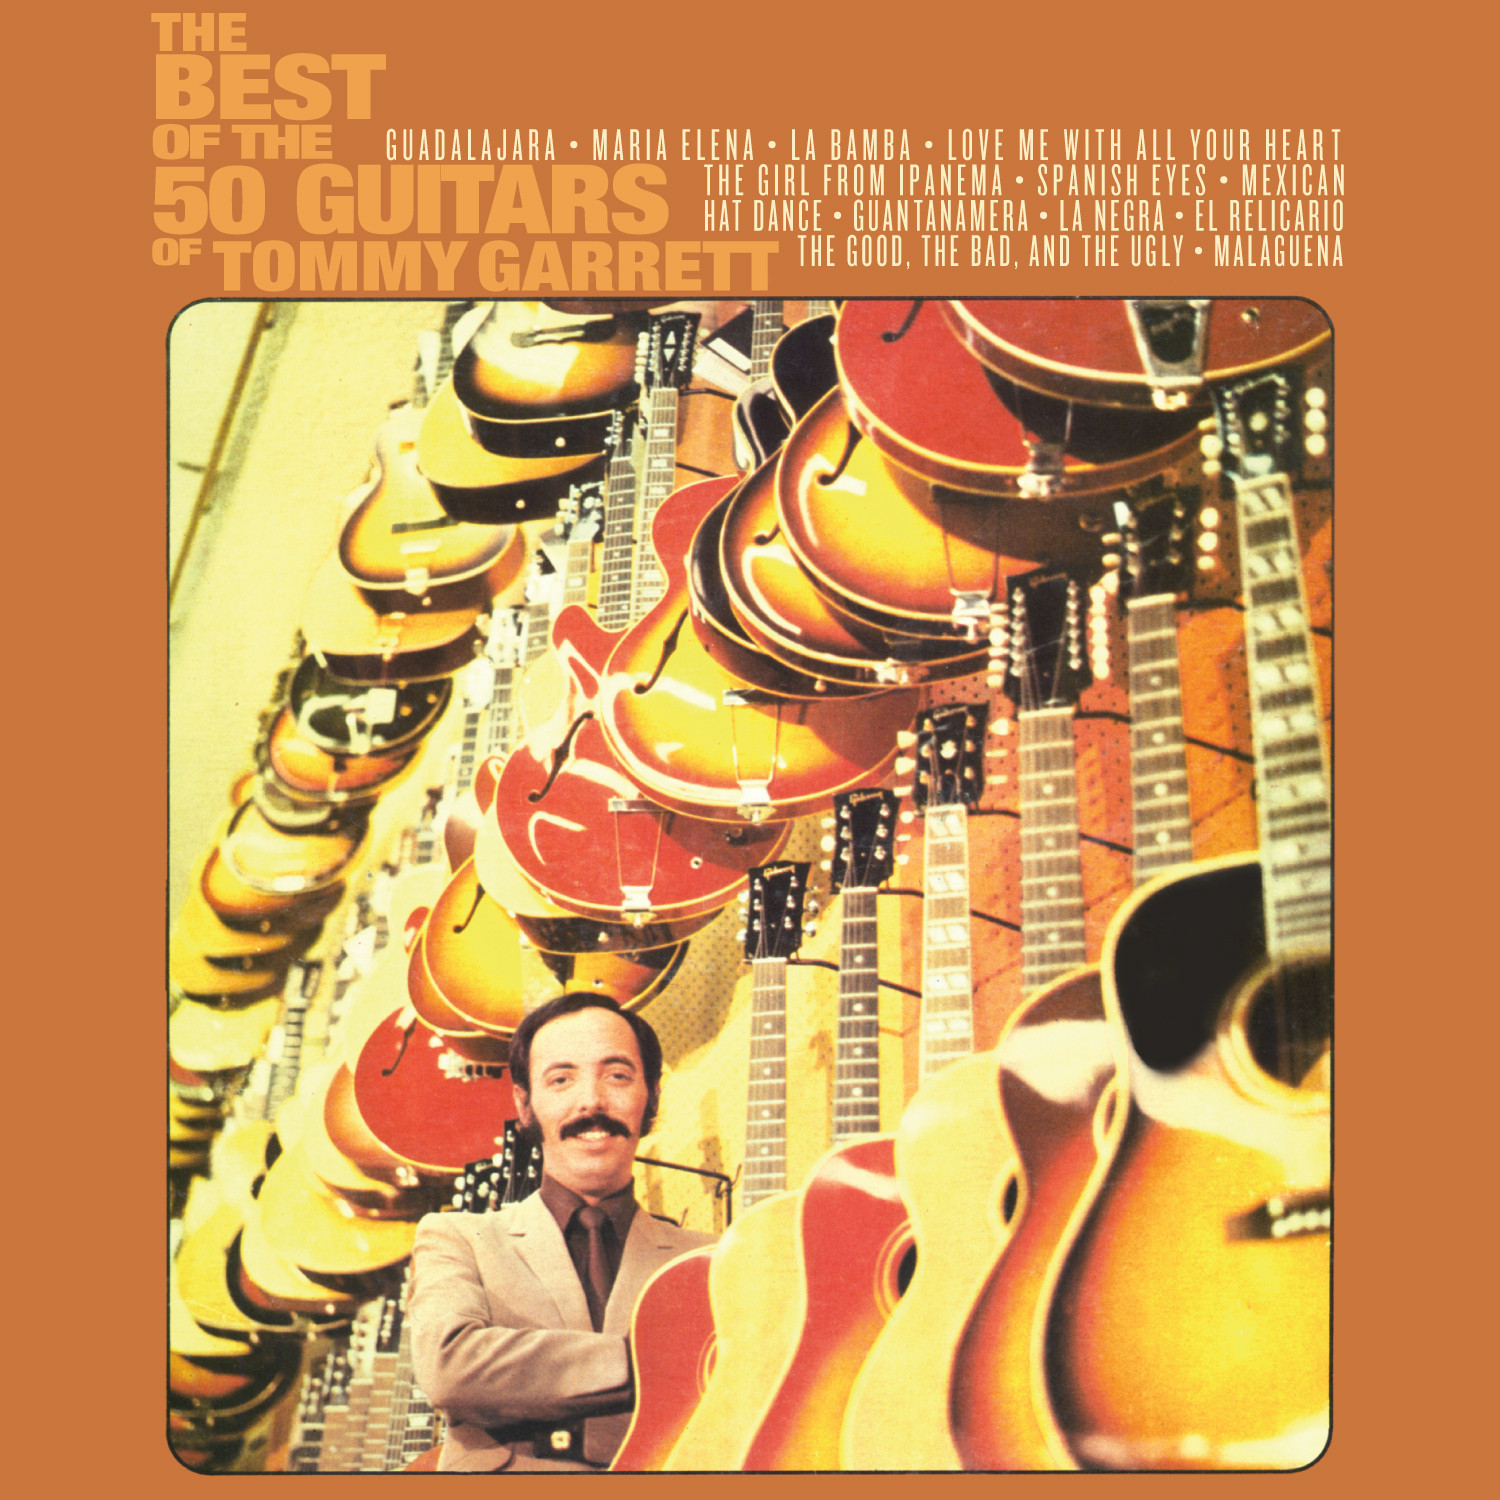 Best of the 50 Guitars, the - 50 Guitars of Tommy Garret - Musik - INSTRUMENTAL - 0030206733280 - May 12, 2015